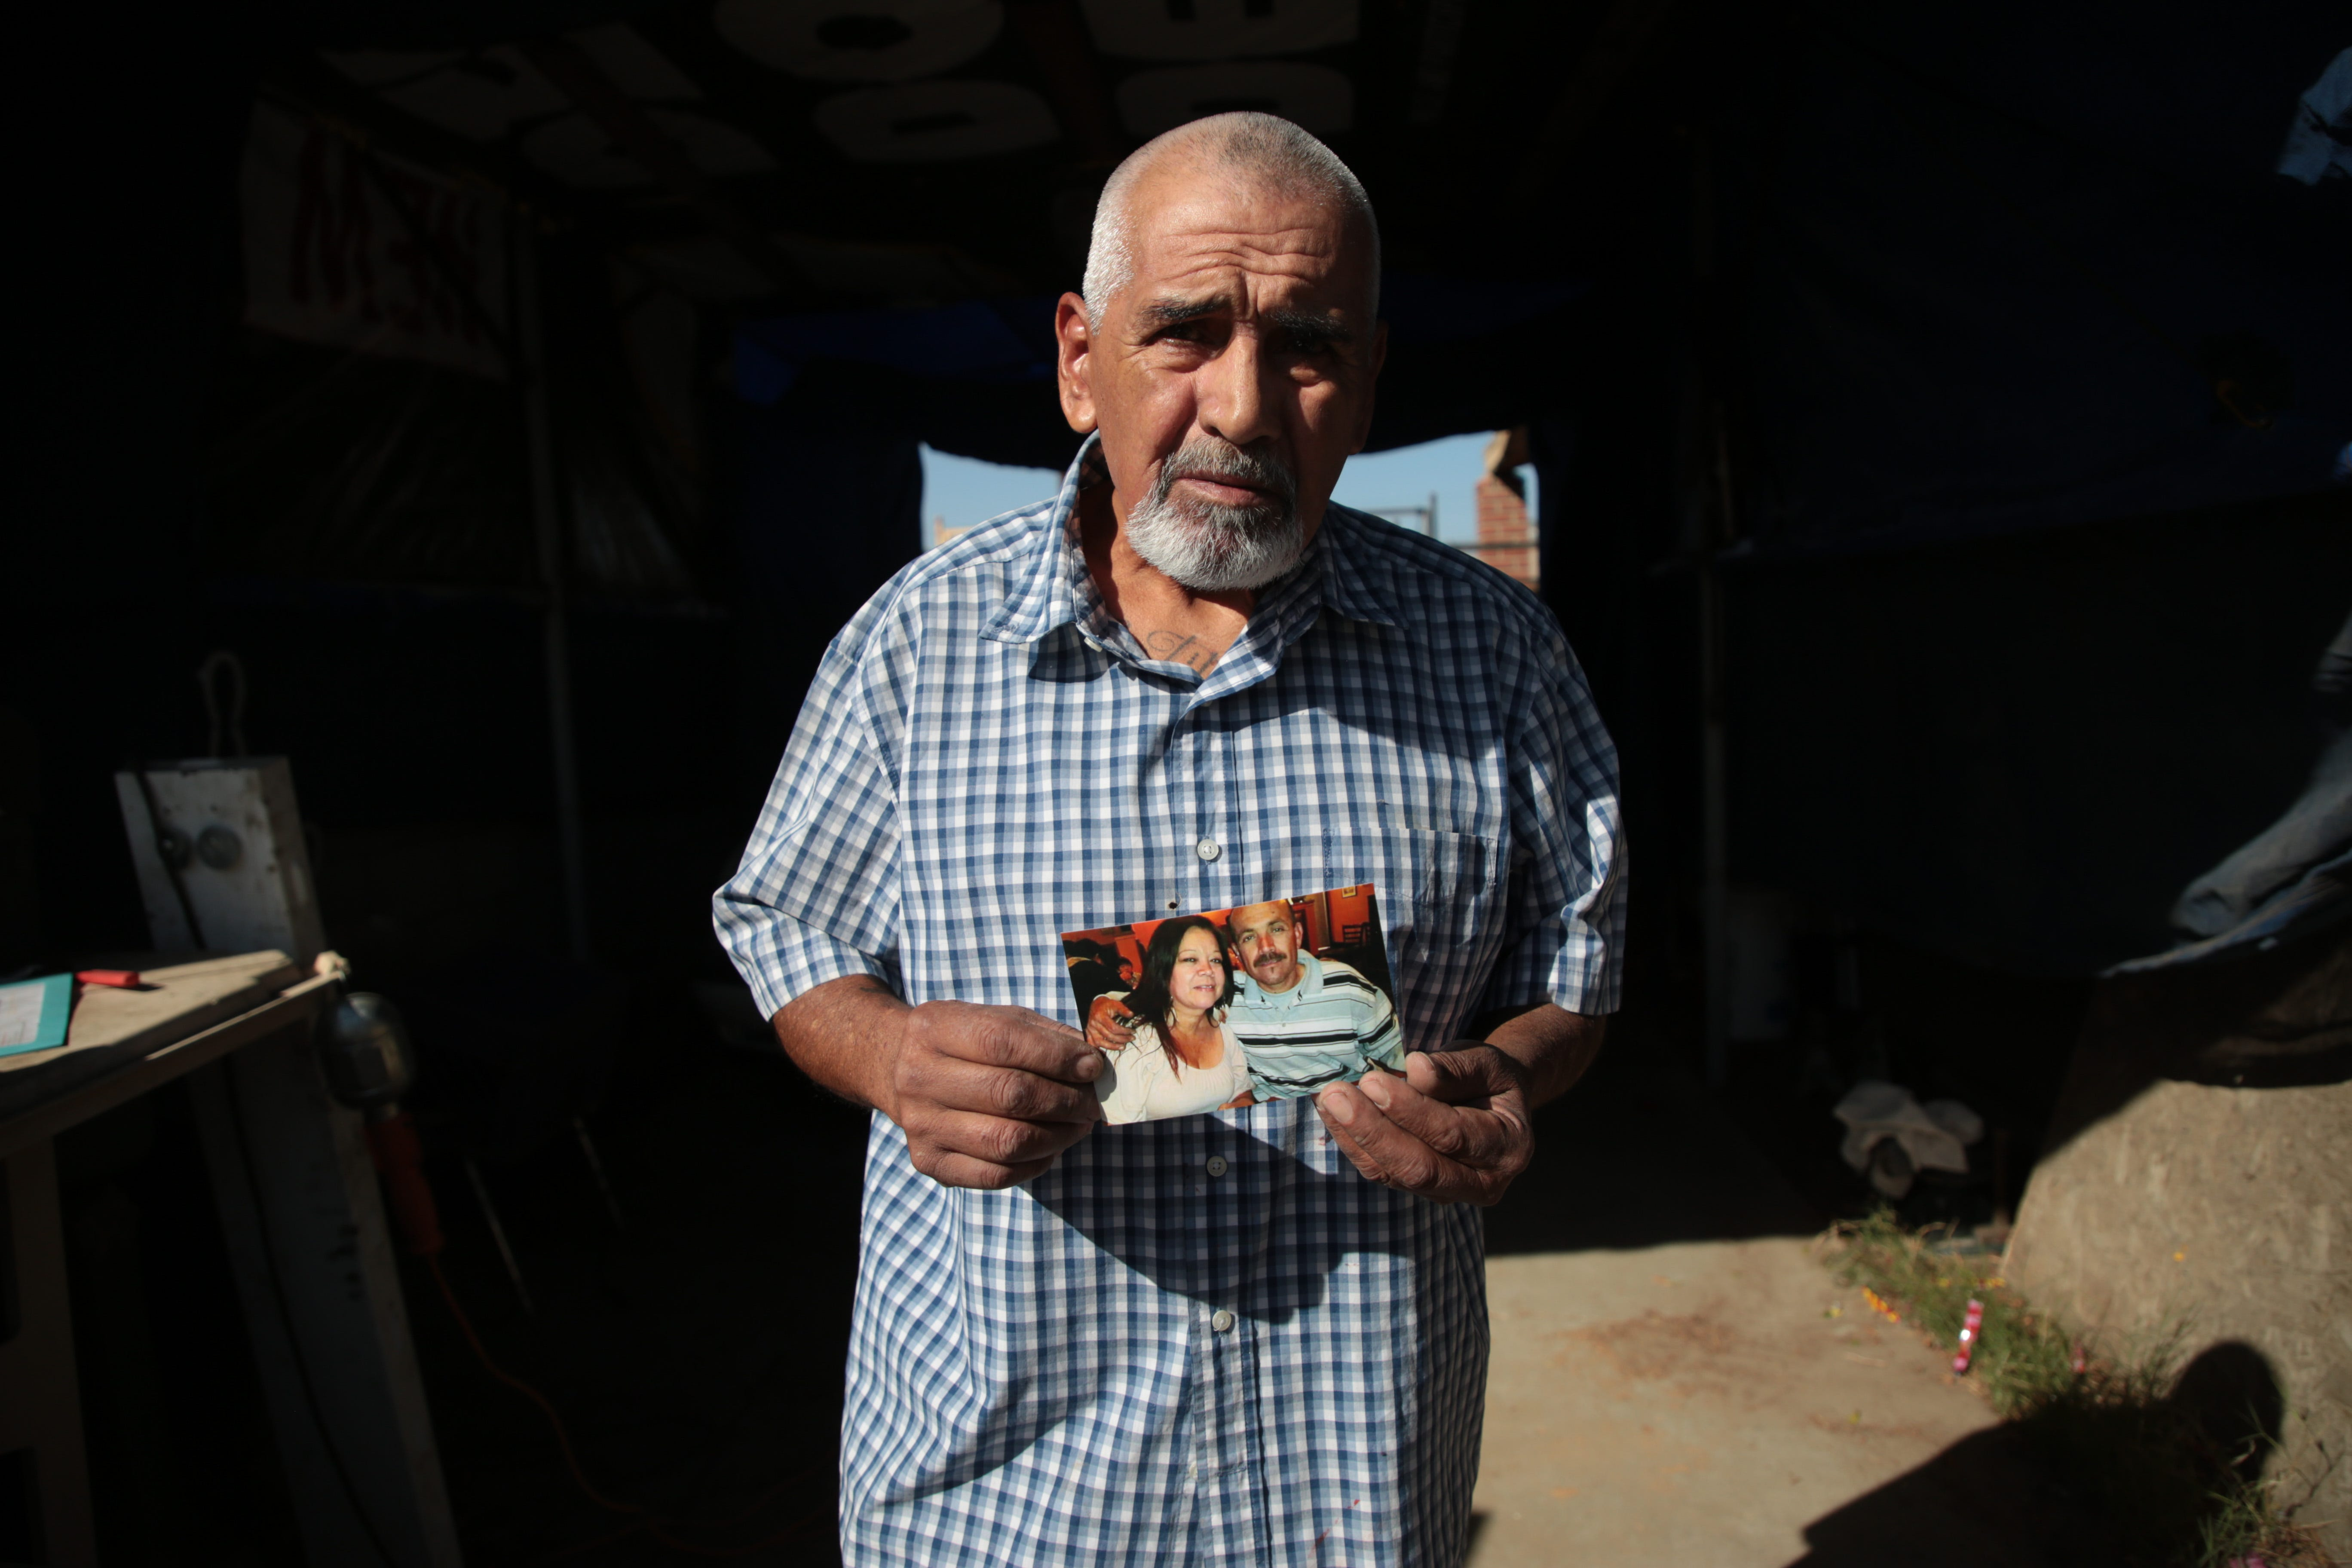 Luis Carlos Morin Sr. holds a photo of his son, Luis Carlos Morin Jr., right, at his home in Coachella  on Feb. 25, 2021. Former Riverside County Sheriff's deputy Oscar Rodriguez is being prosecuted for fatally shooting Luis Morin Jr. in 2014.